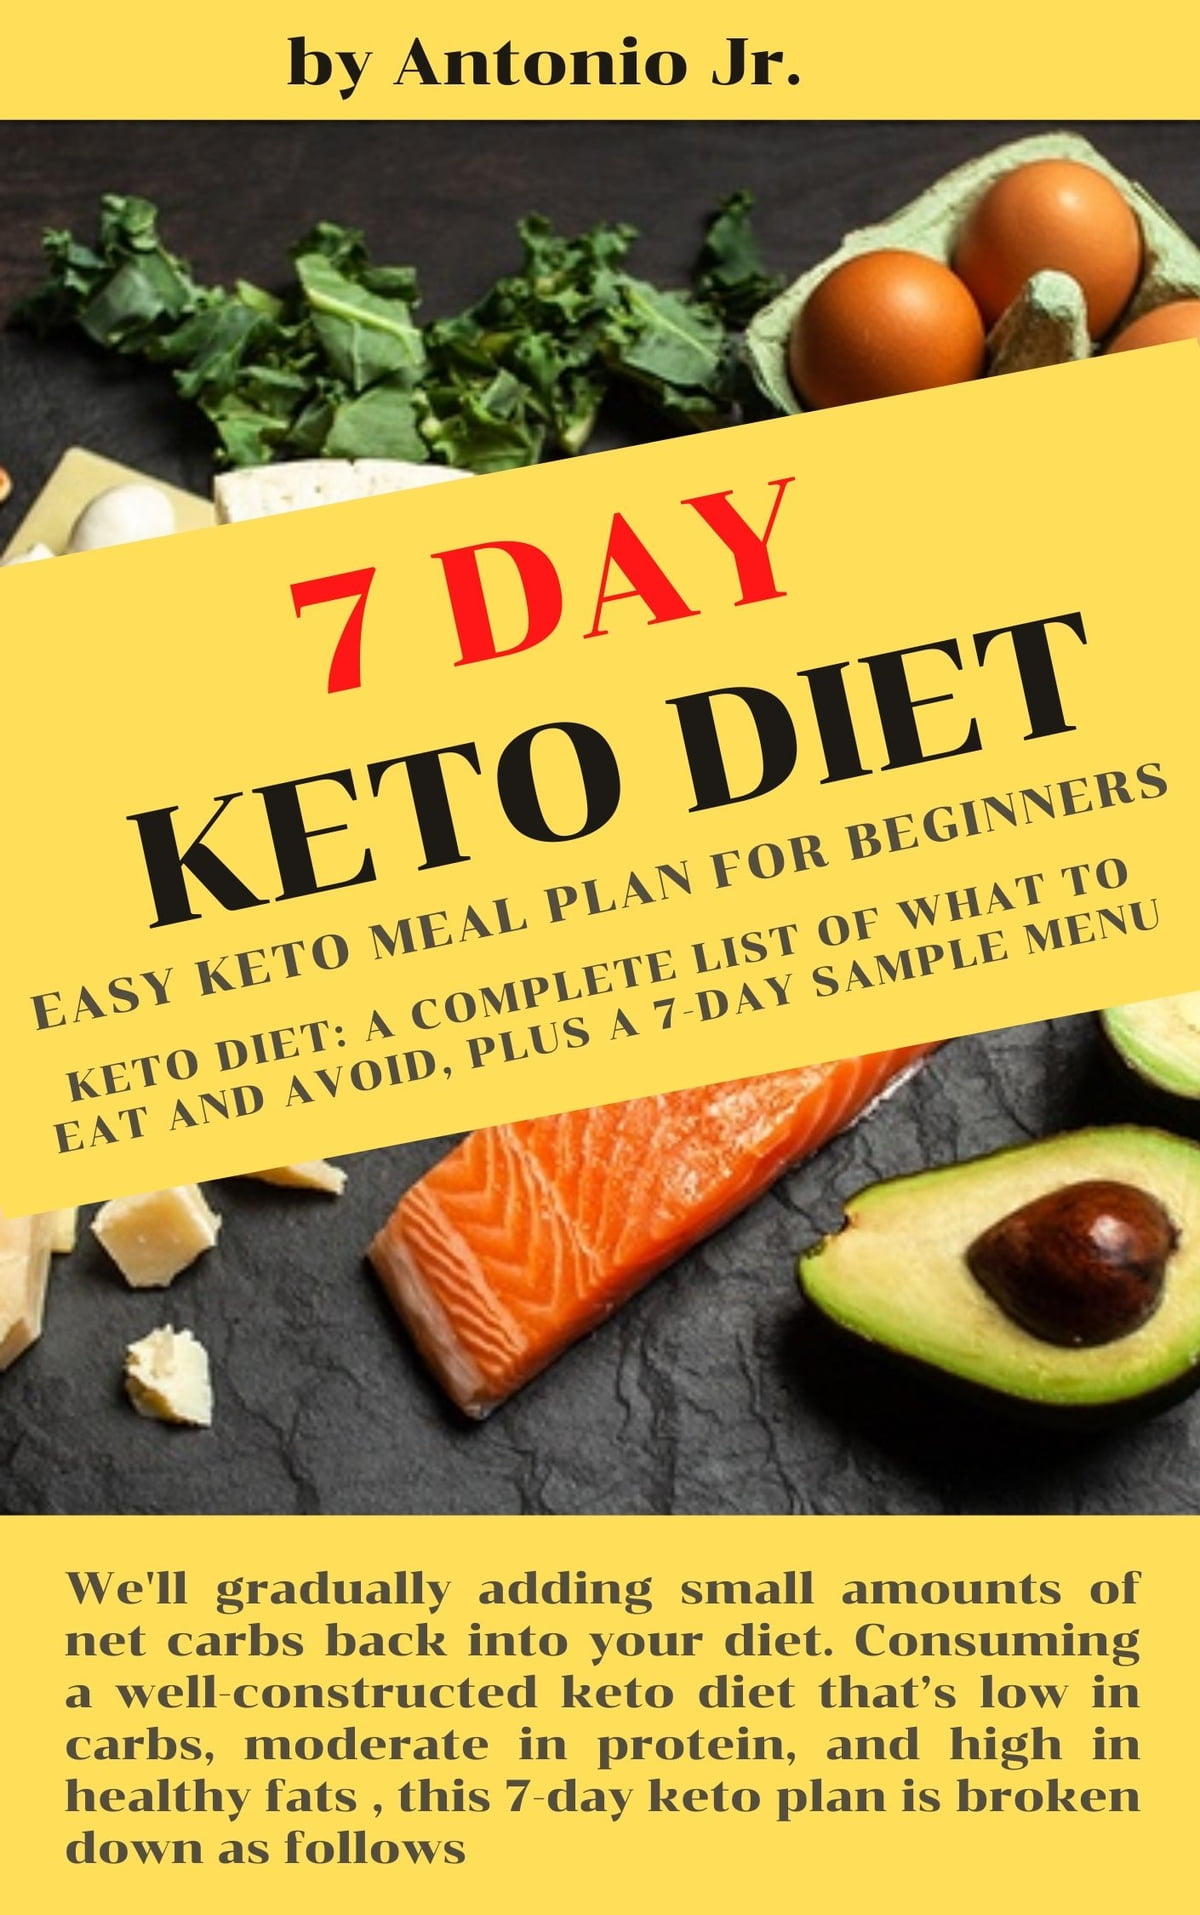 7 Day Keto Diet Easy Keto Meal Plan For Beginners Ebook By Antonio Jr 1230004004059 Rakuten Kobo United States